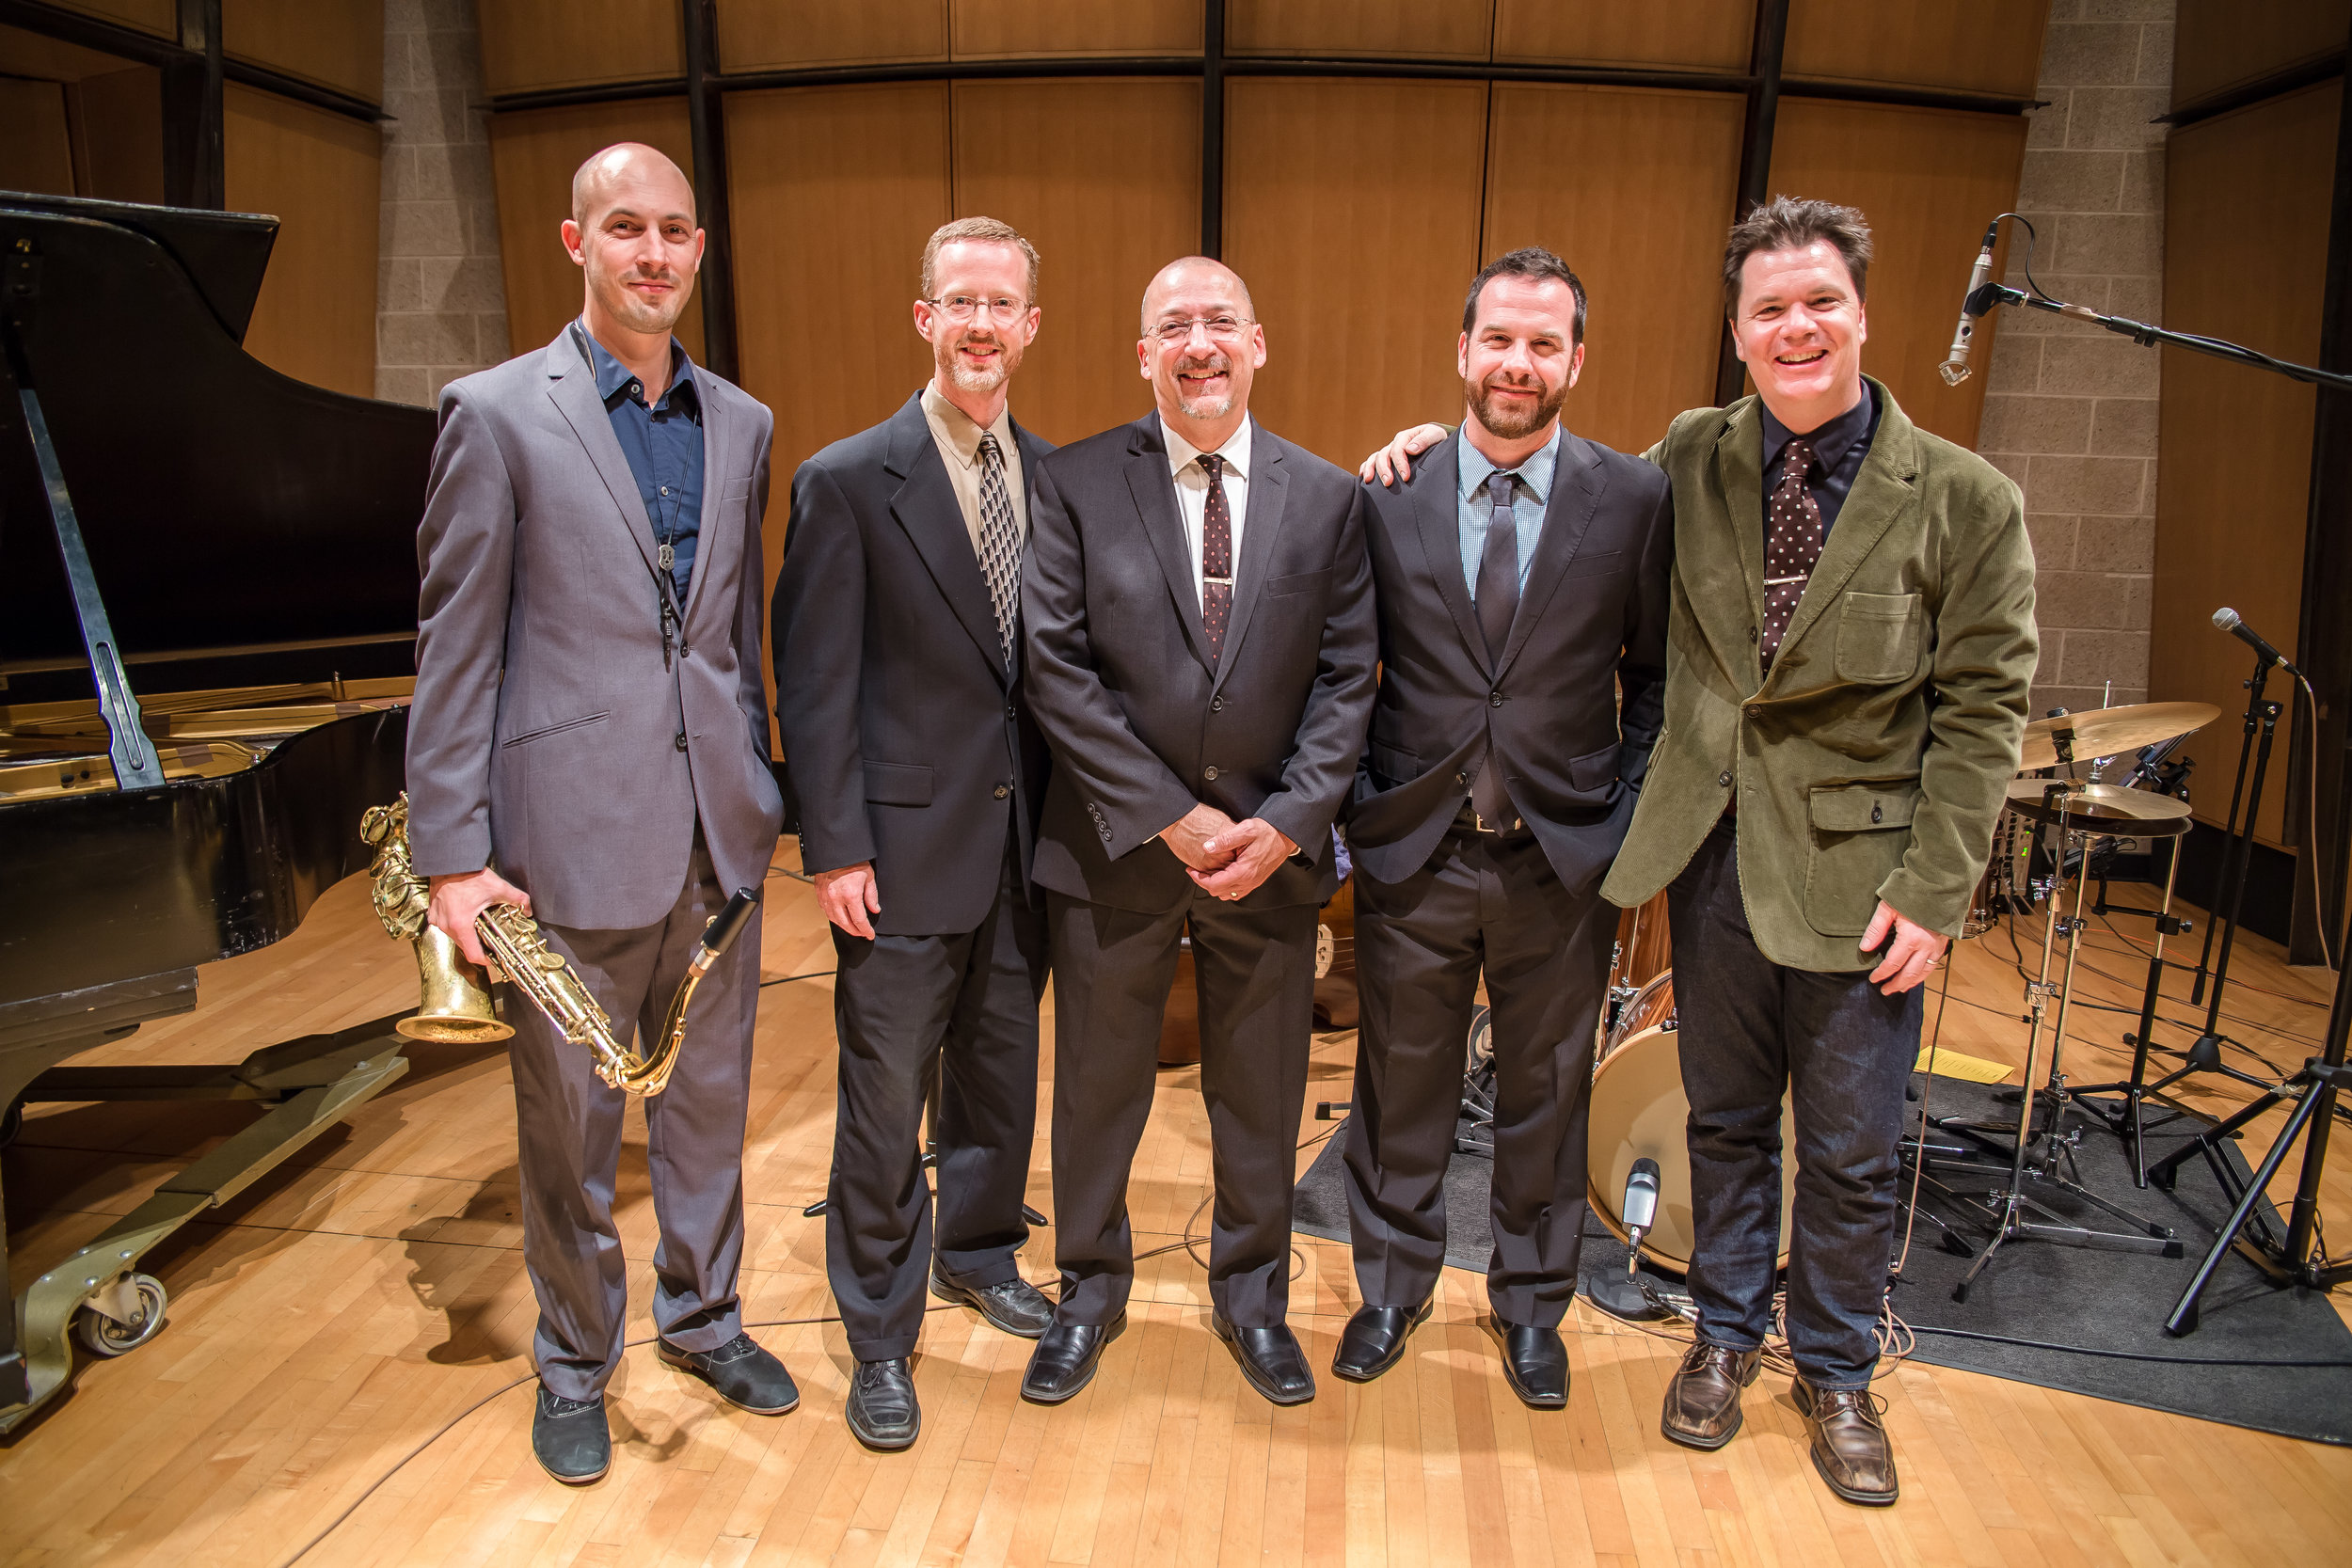 Tribute to Billy Strayhorn, 10/19/15  From left: Elijah Samuels (saxophone), Pete Ellingson (piano), Todd Reid (drums), Greg Garrison (bass), Sean McGowan (guitar).